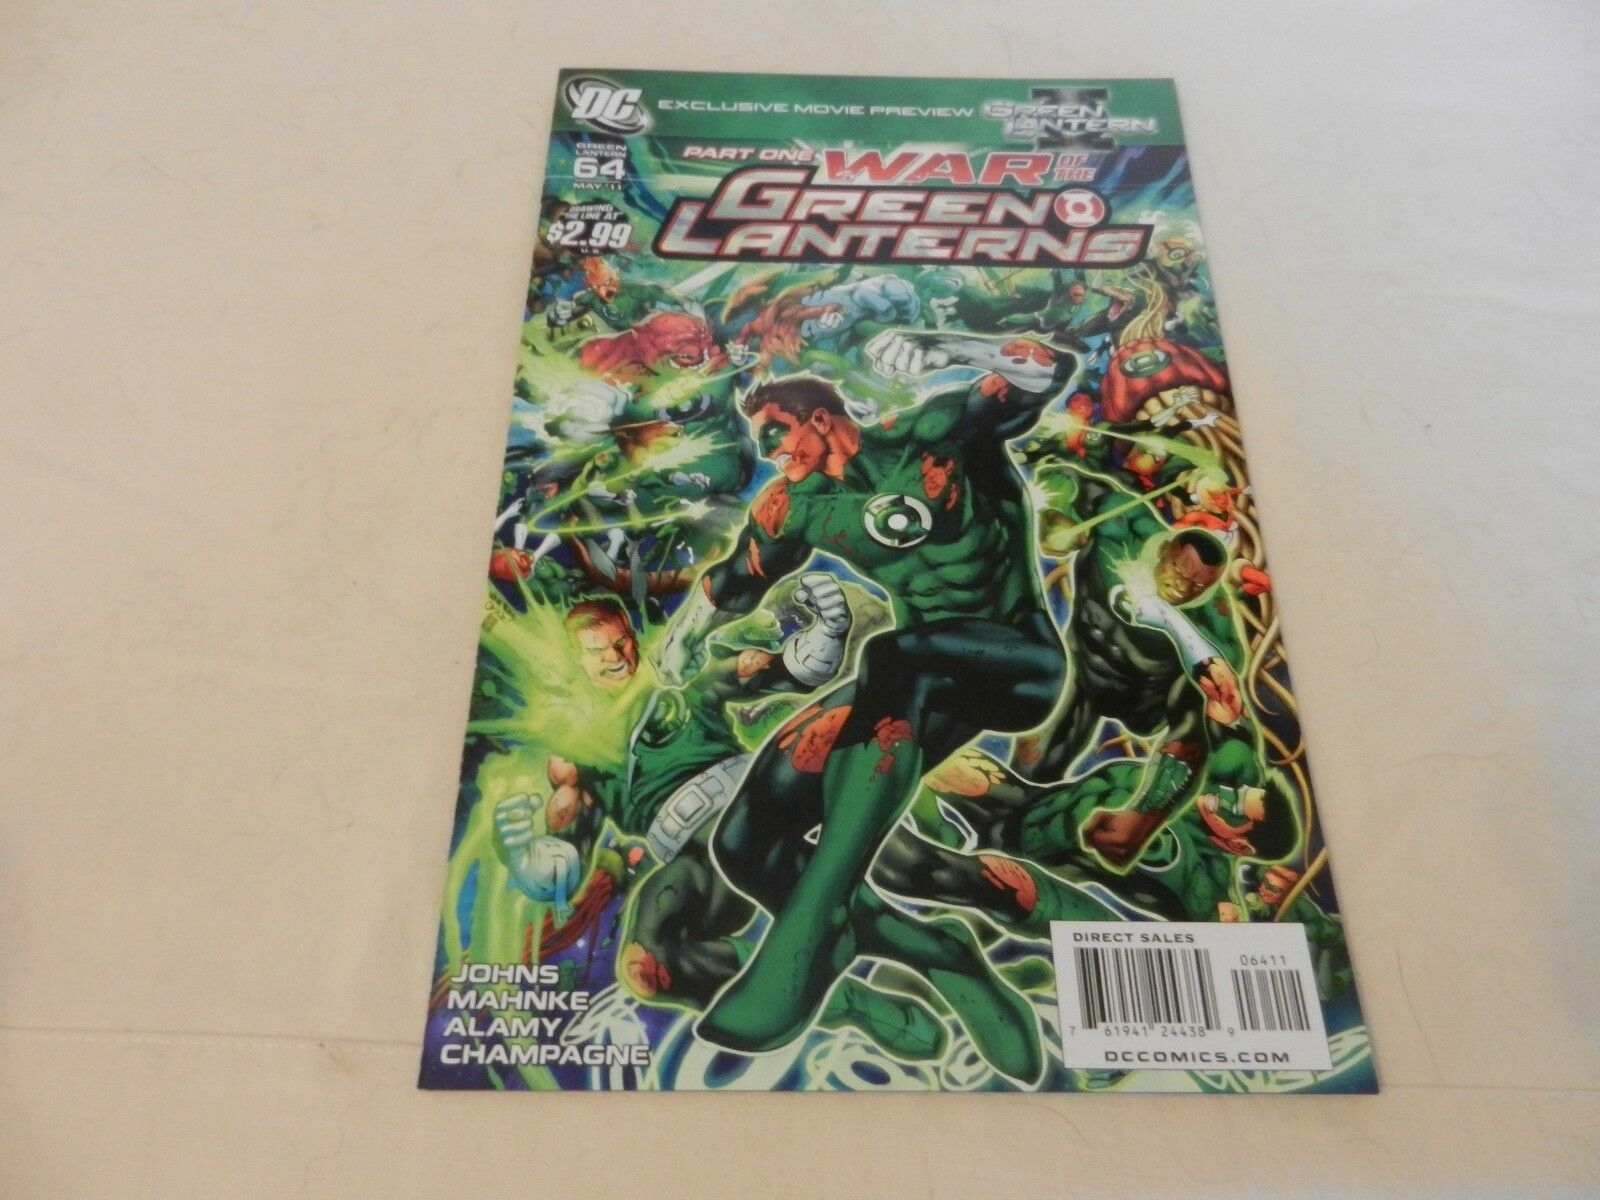 Part One War of The Green Lanterns DC Comics #64 May 2011